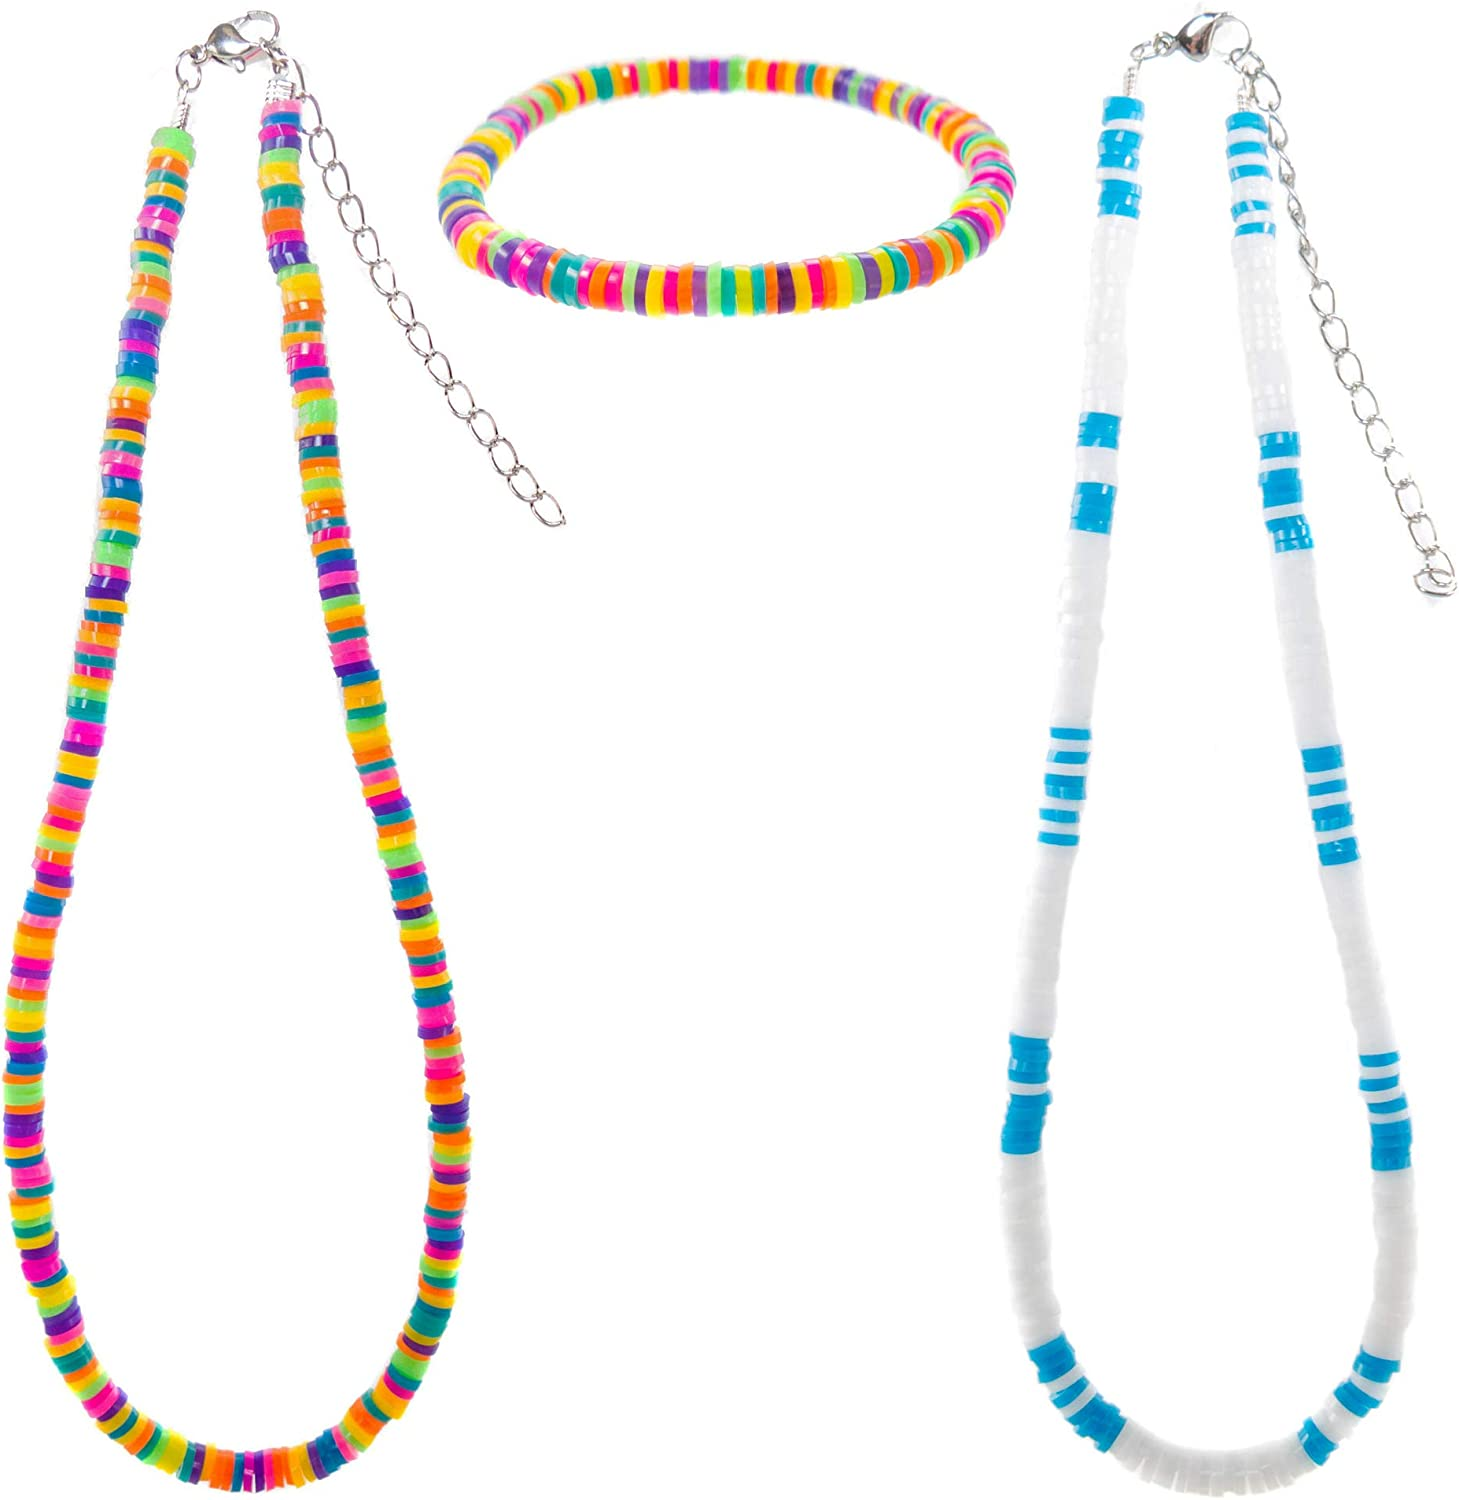 Surfer Jewelry Beach Necklaces and Bracelet Set Colored Puka Chip Disc Beaded Necklaces and Stretch Bracelet Faux Puka Shell Necklaces and Bracelet Set FROG SAC Unisex Summer Jewelry Set